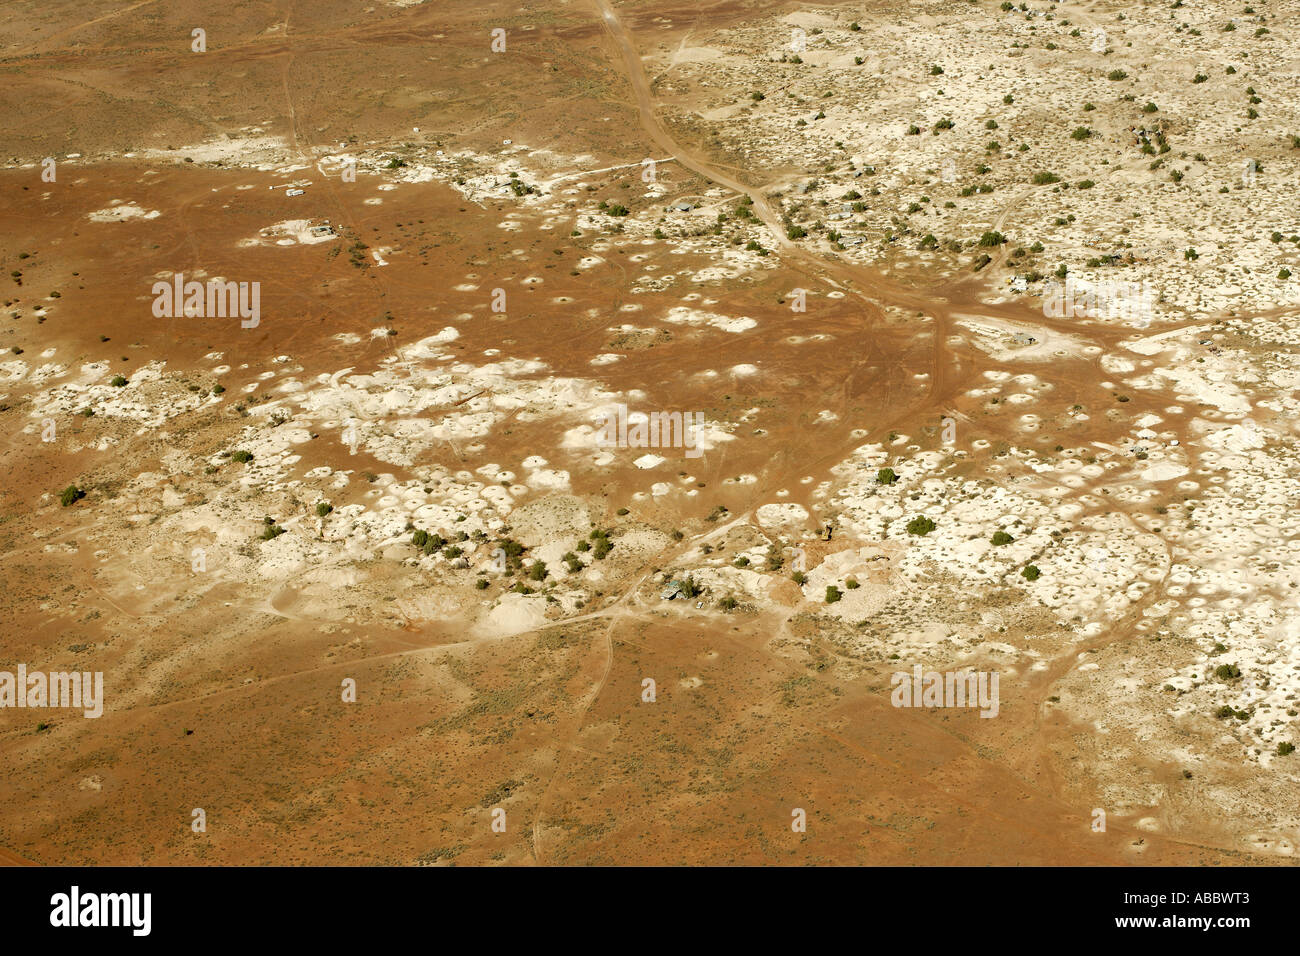 Flying Over Opal Mines in White Cliffs in the Australian Outback [2], NSW - Stock Image